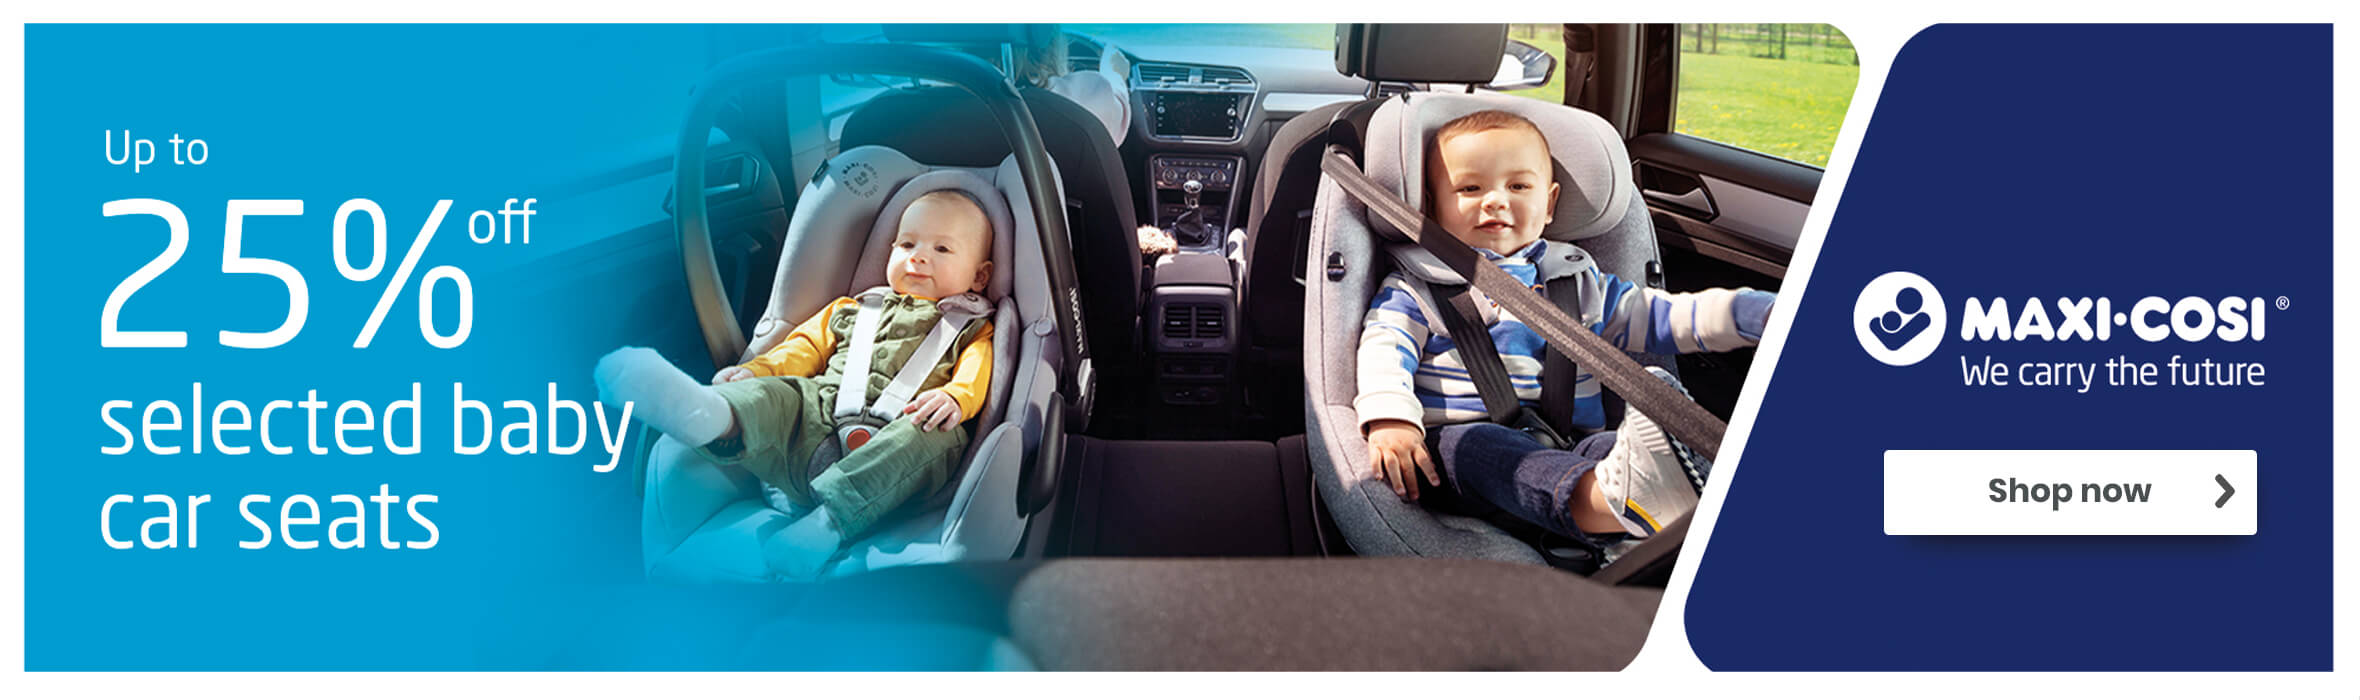 Up to 25% off selected maxi Cosi Car Seats